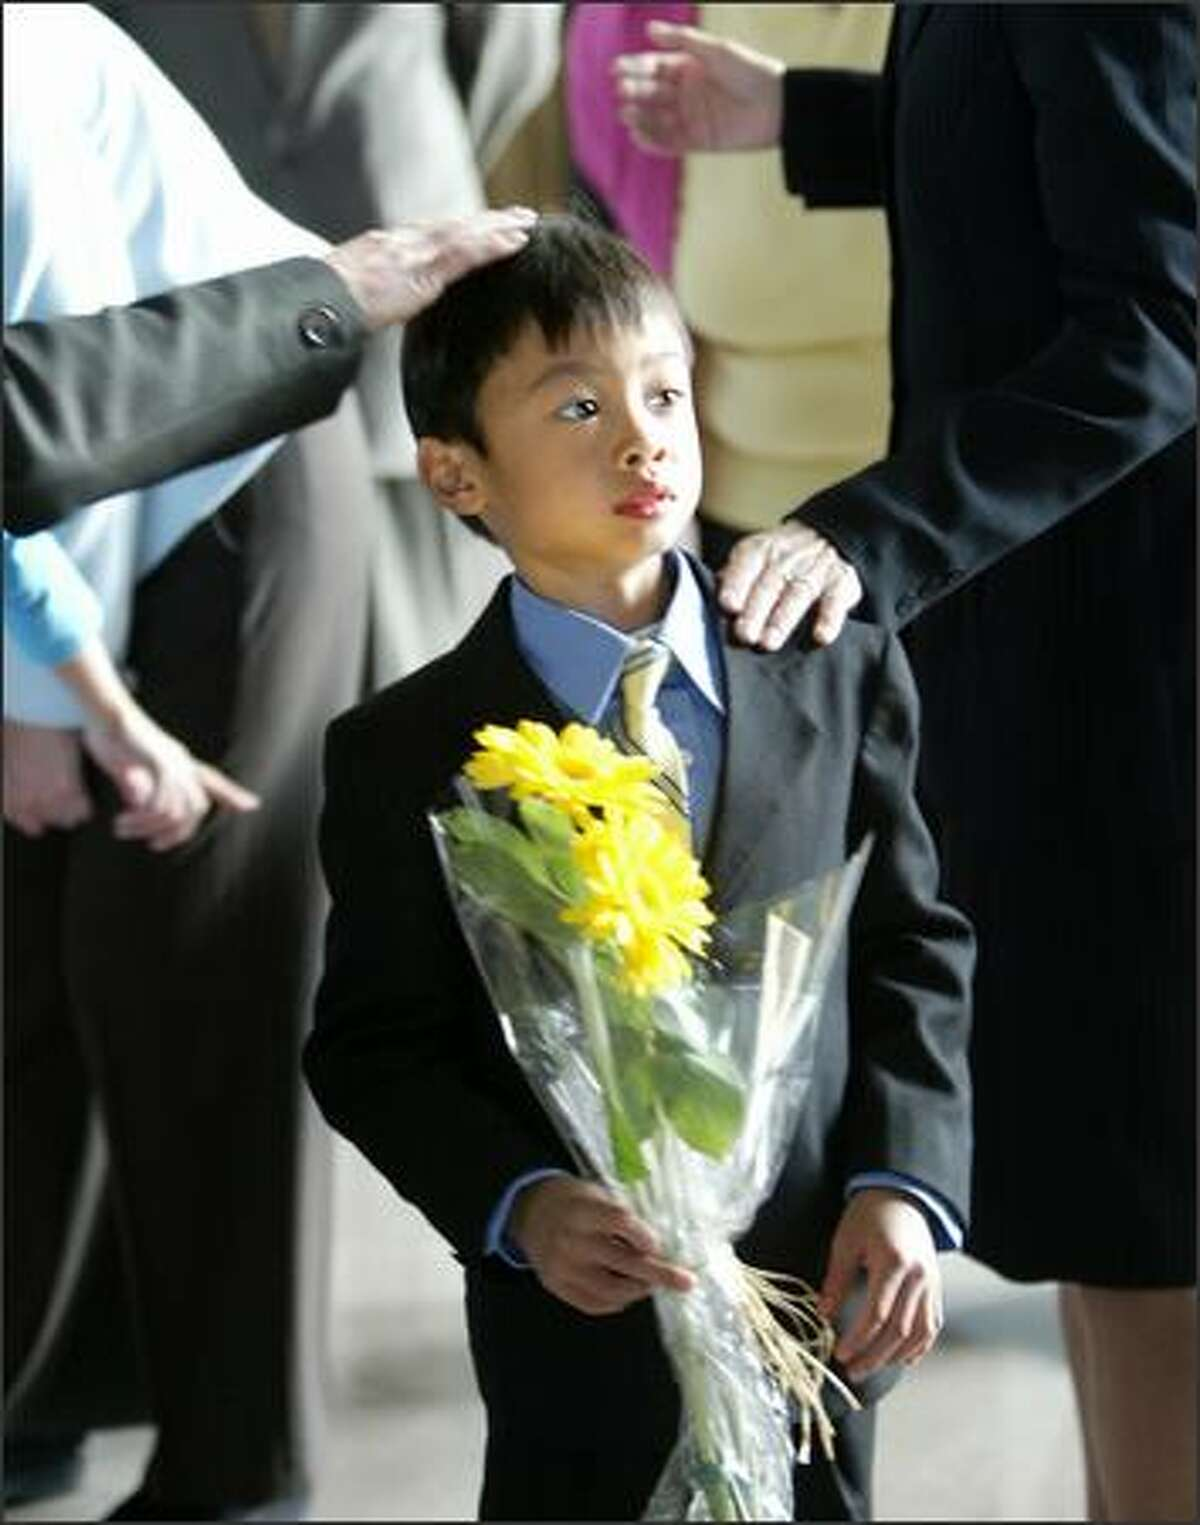 Seven-year-old Dylan Locke, son of former Gov. Gary Locke, waits to present flowers to China's Hu Jintao upon the president's arrival at a luncheon Wednesday at the Future of Flight Museum in Mukilteo with Washington dignitaries.